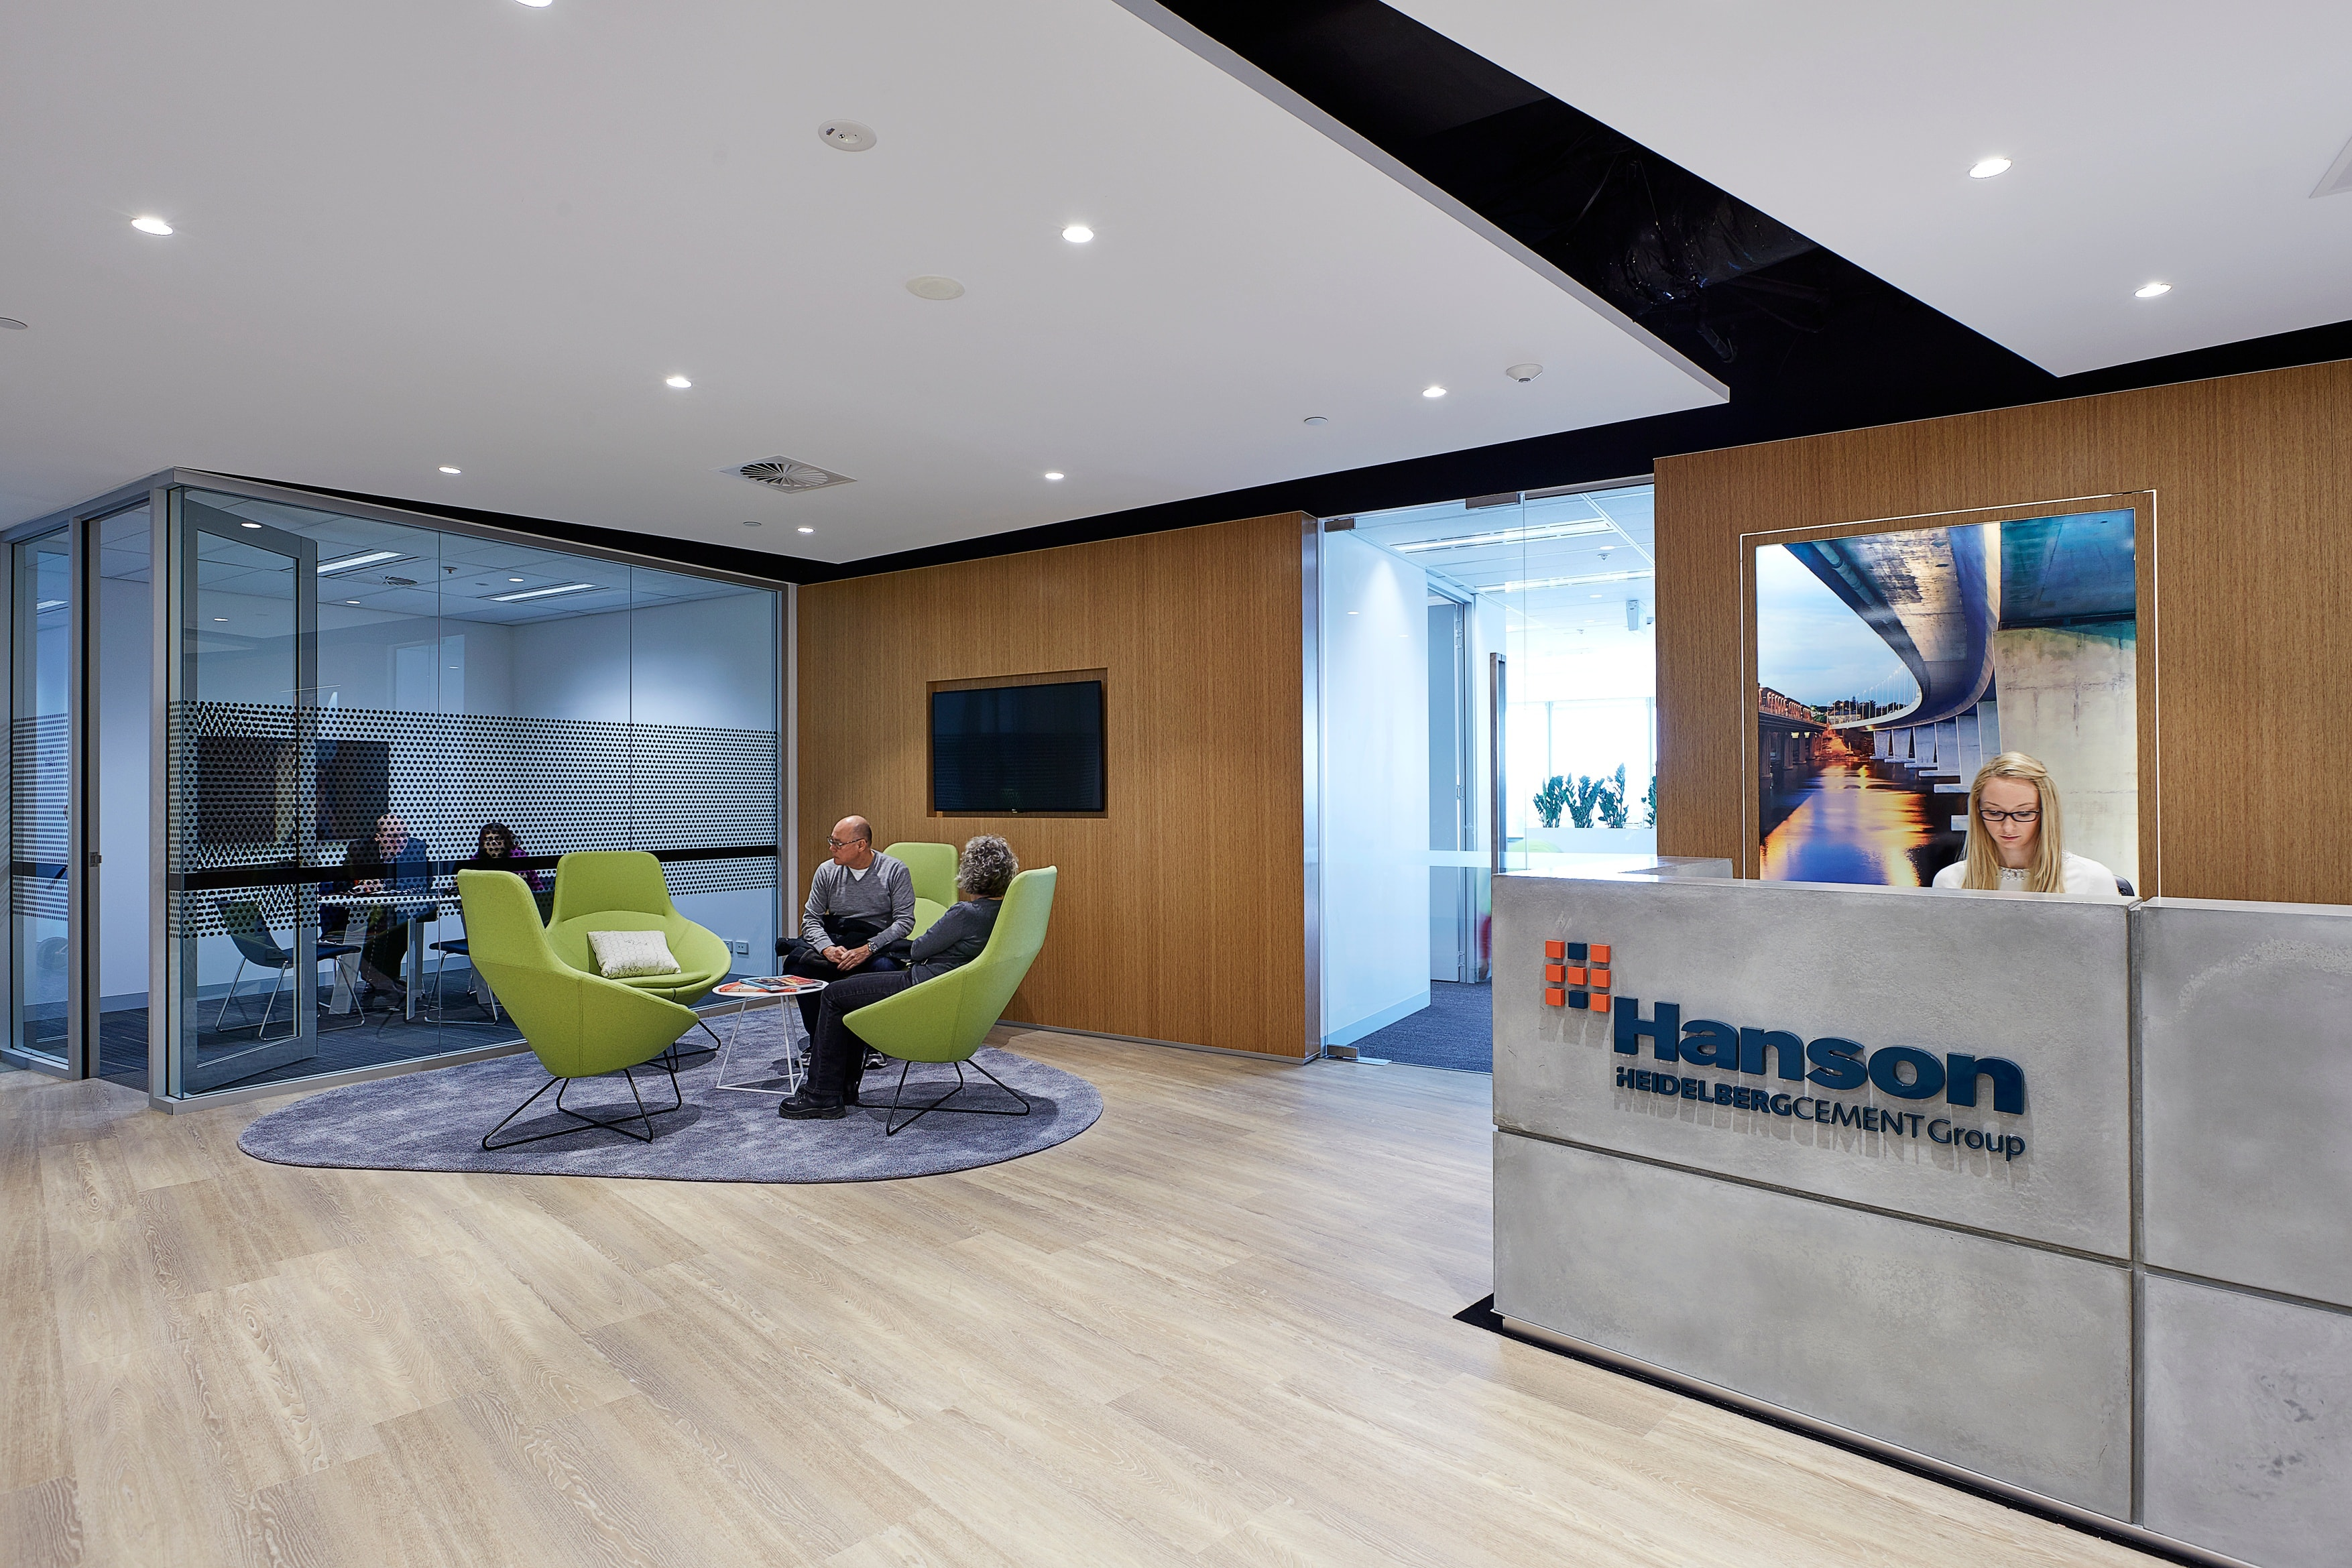 Hanson Parramatta Fitout Tenant Representation, Interior Design, Project & Construction Management Project Image 4 by PCG